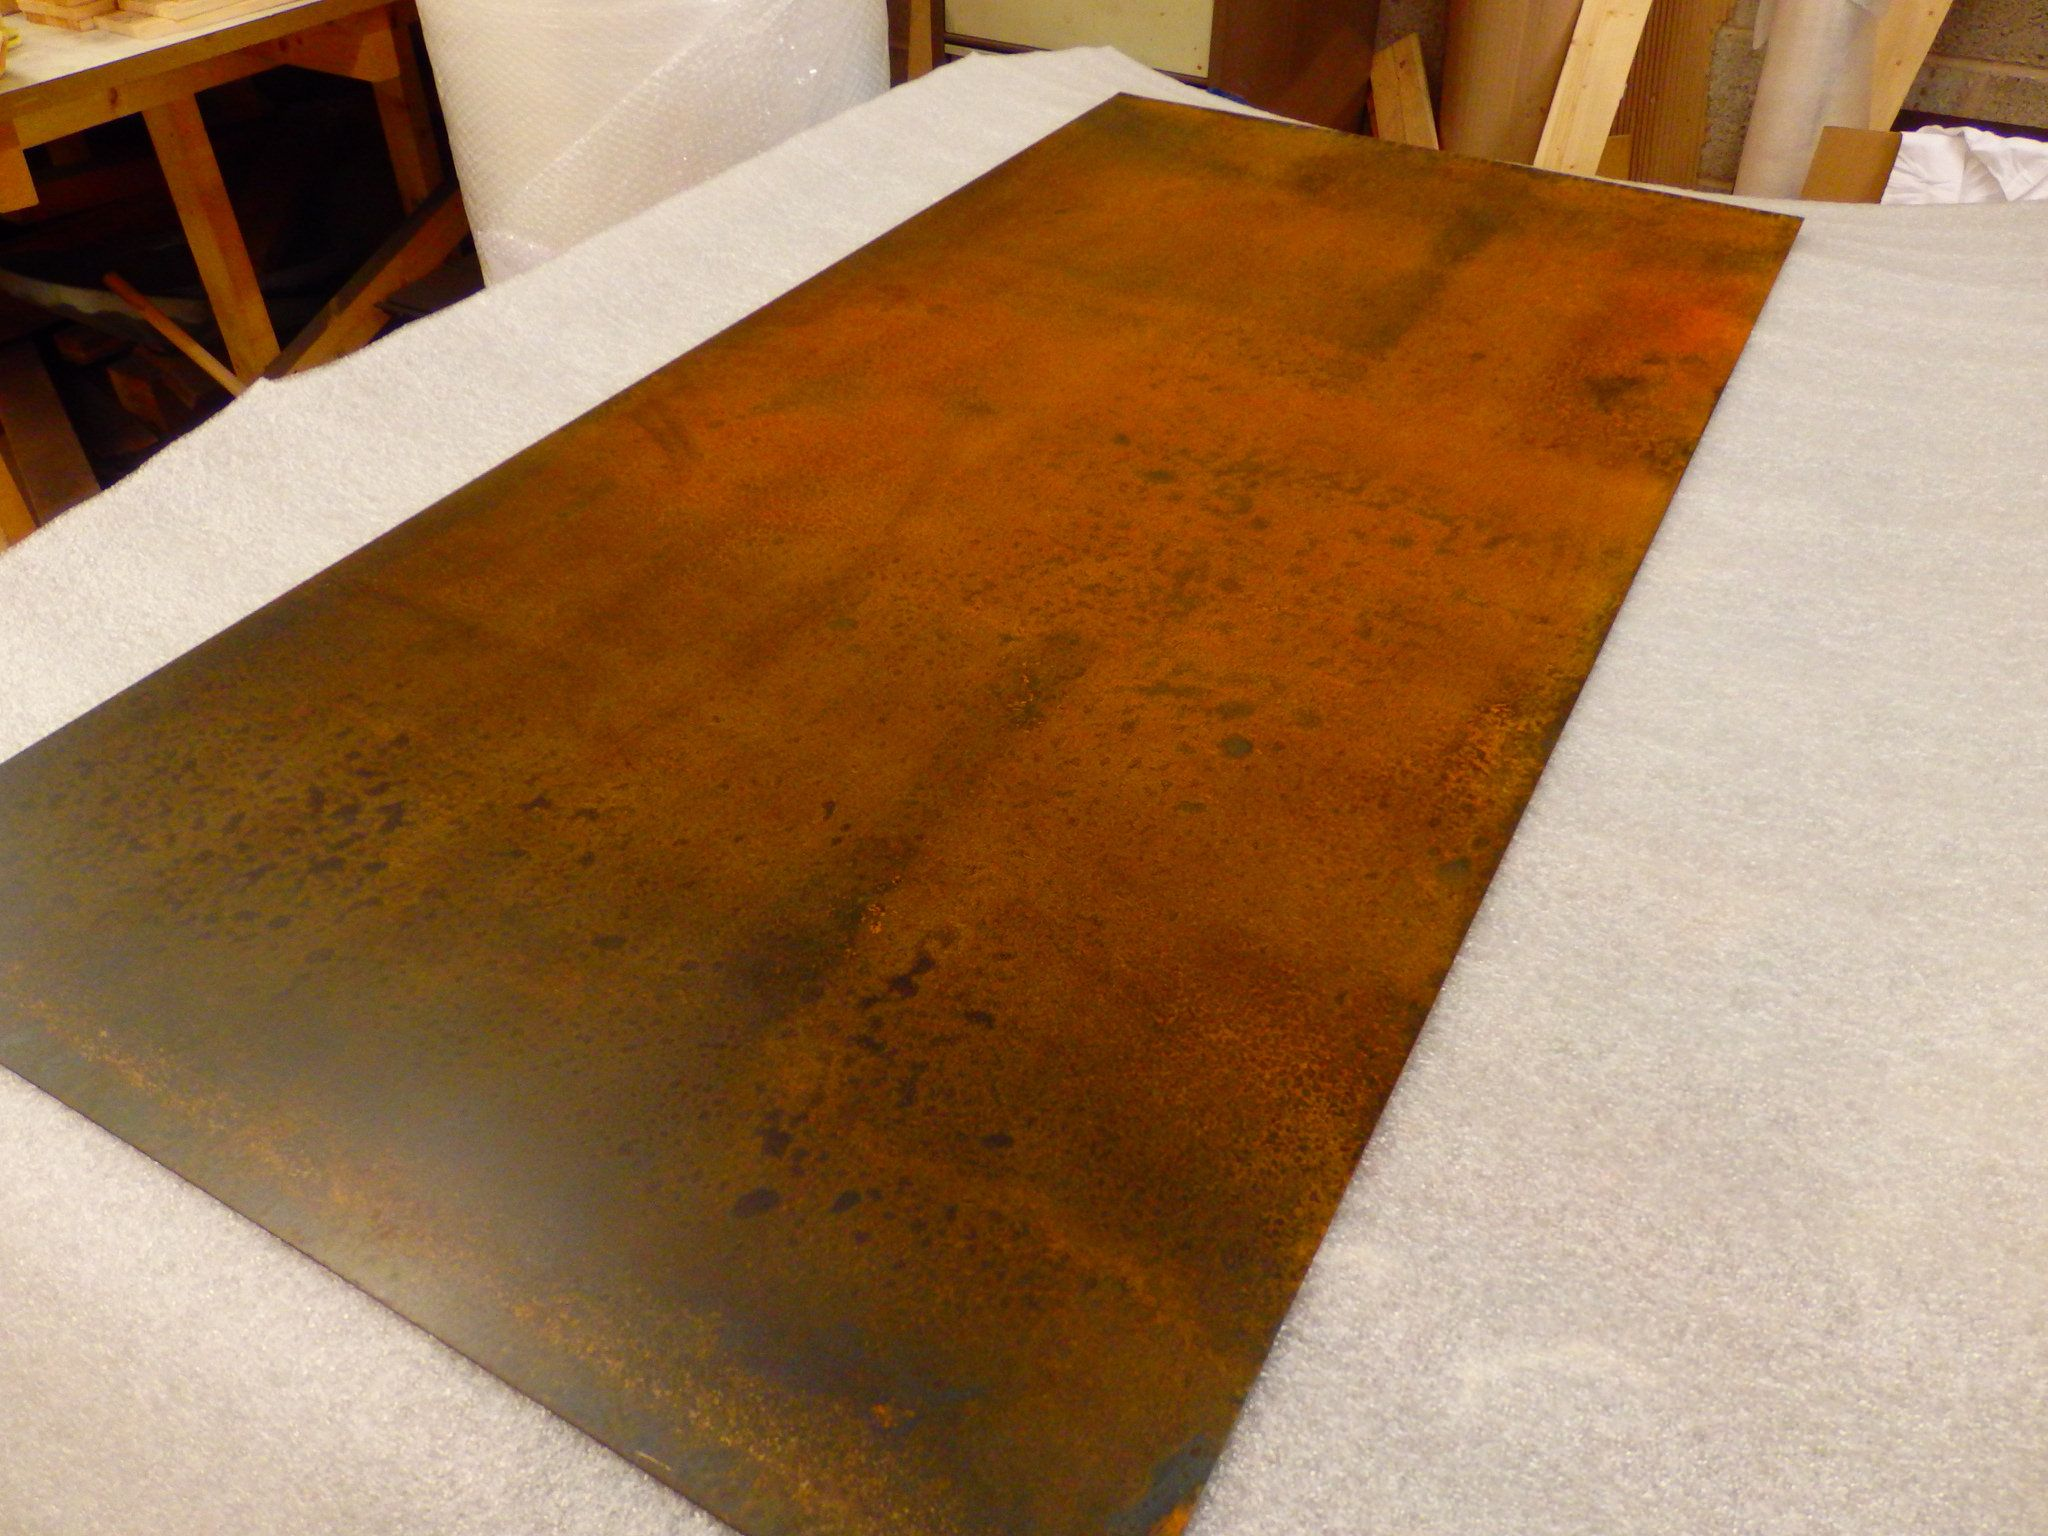 45 Rusted Mild Steel Panel With Clear Lacquer Finish 100cm X 50cm Steel Panels Paneling Steel